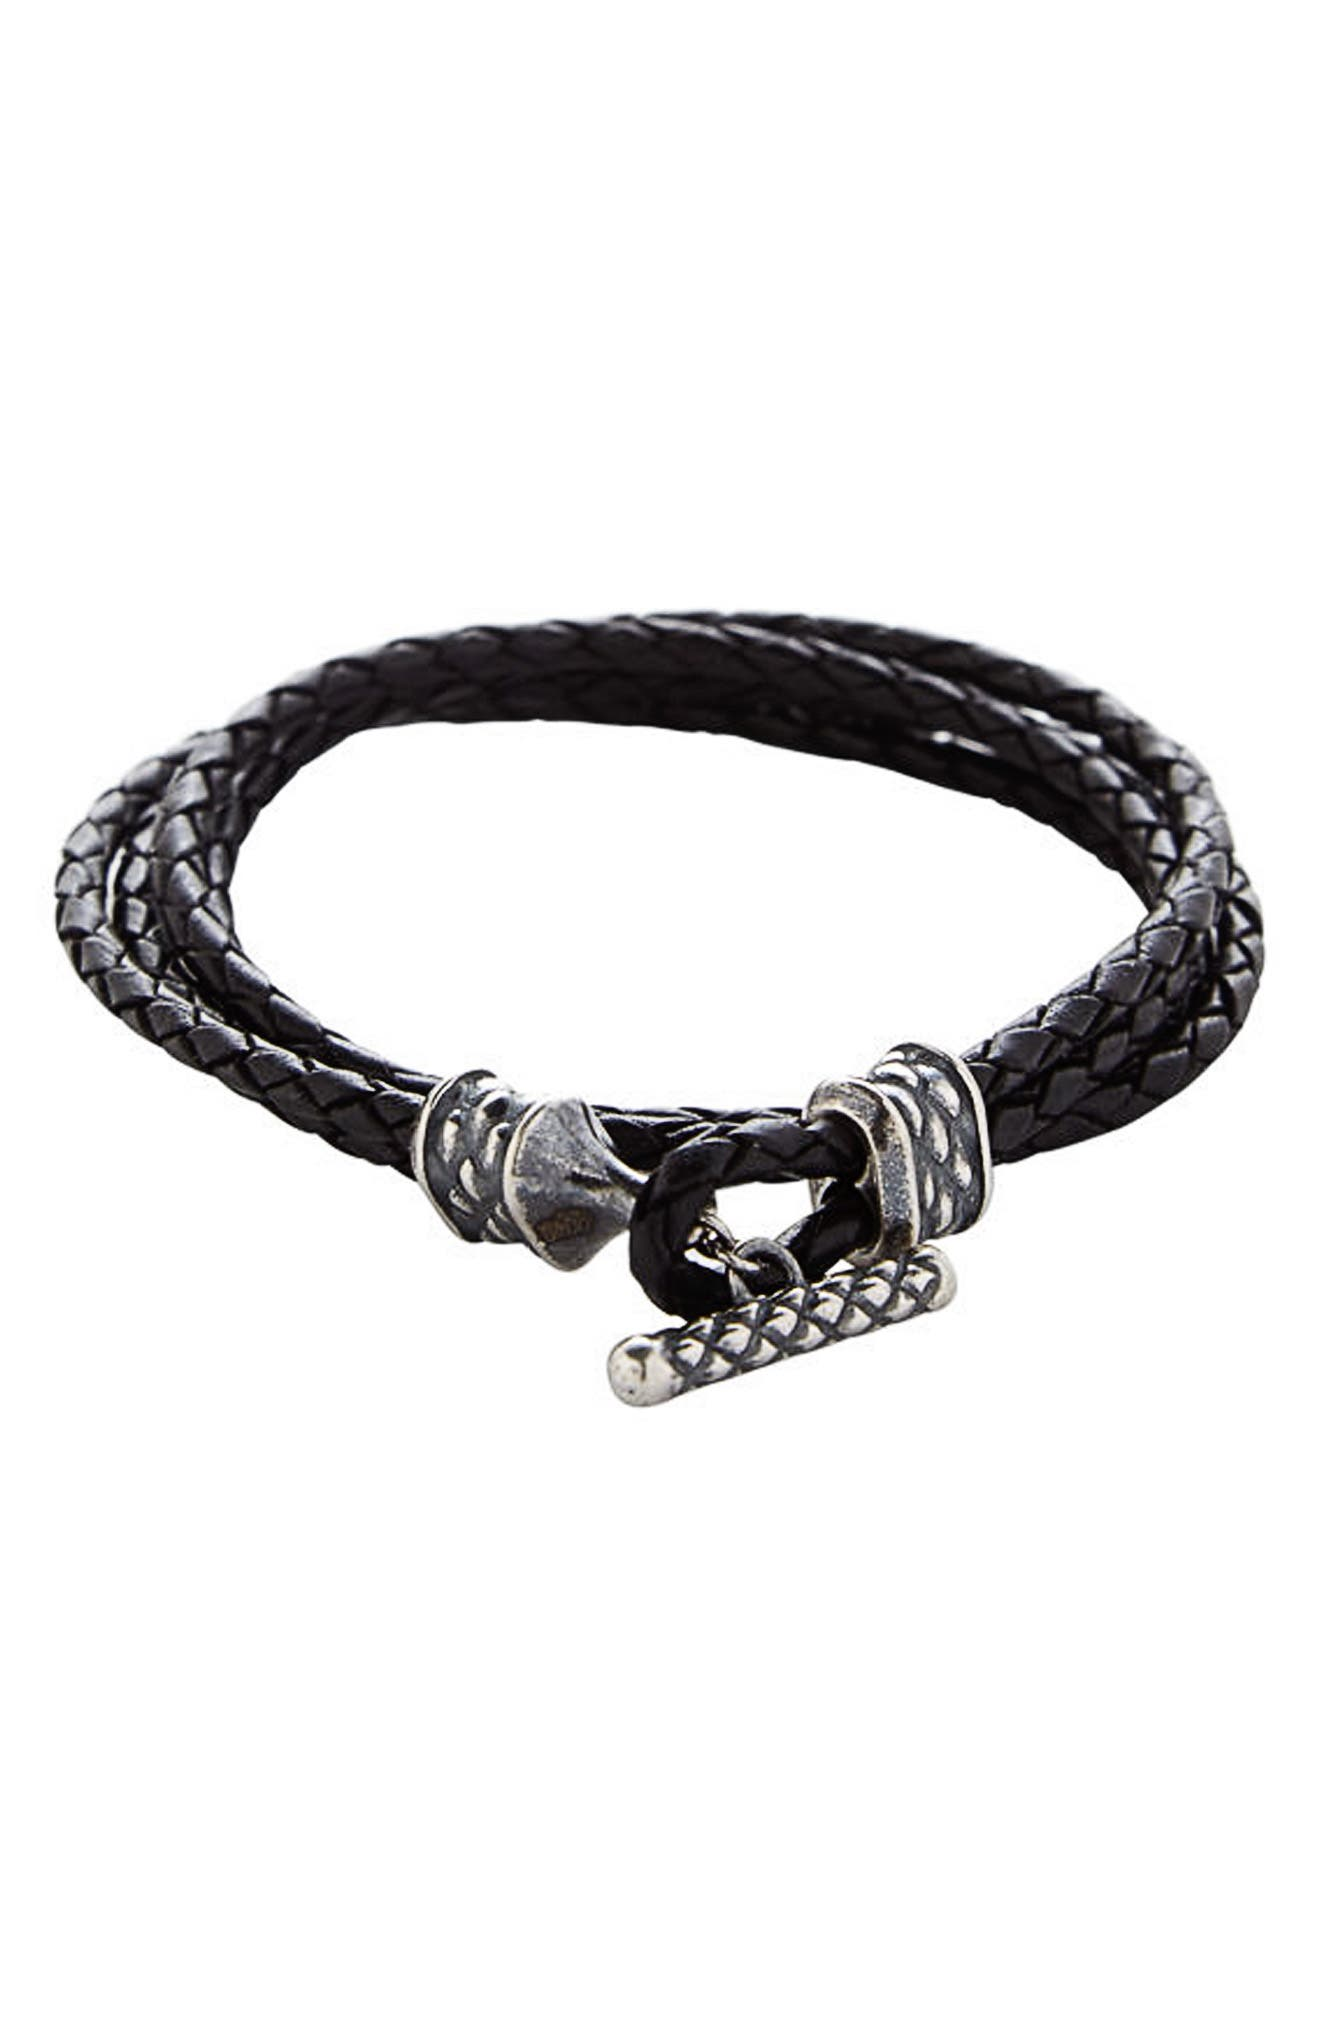 Stealth Leather Wrap Bracelet,                         Main,                         color, 001